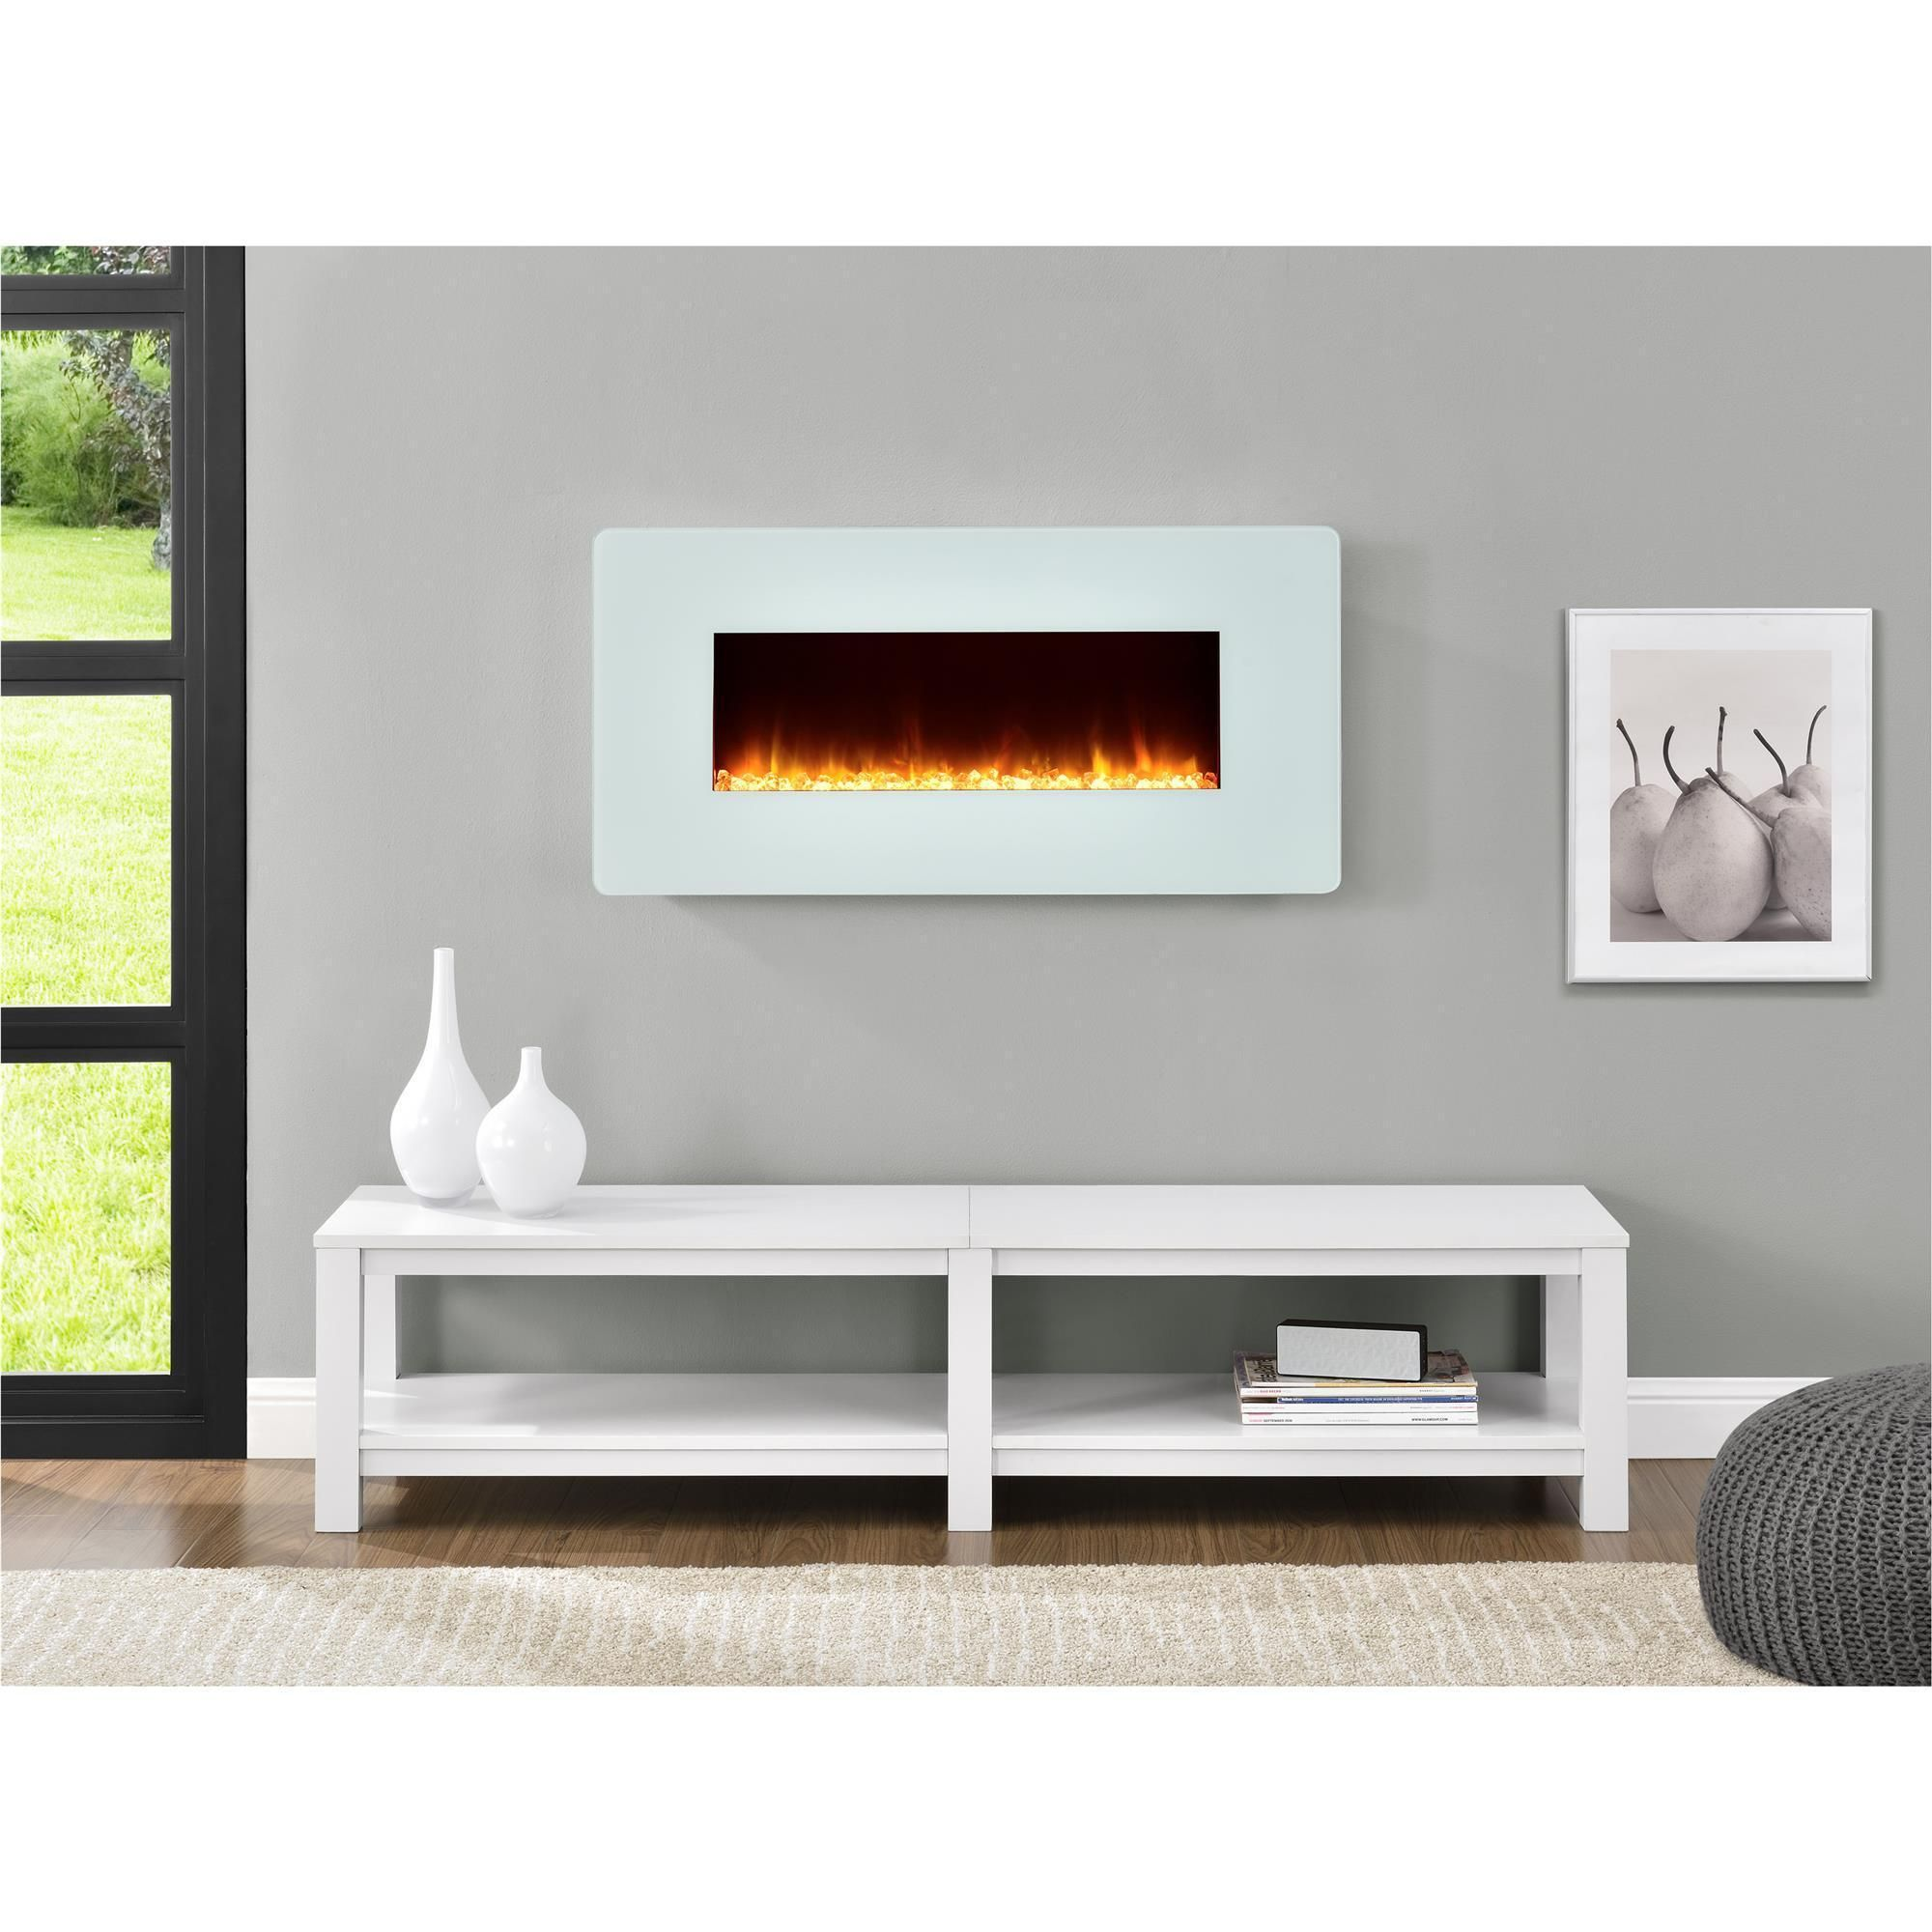 Online Shopping Bedding Furniture Electronics Jewelry Clothing More Wall Mount Electric Fireplace Home Hanging Fireplace